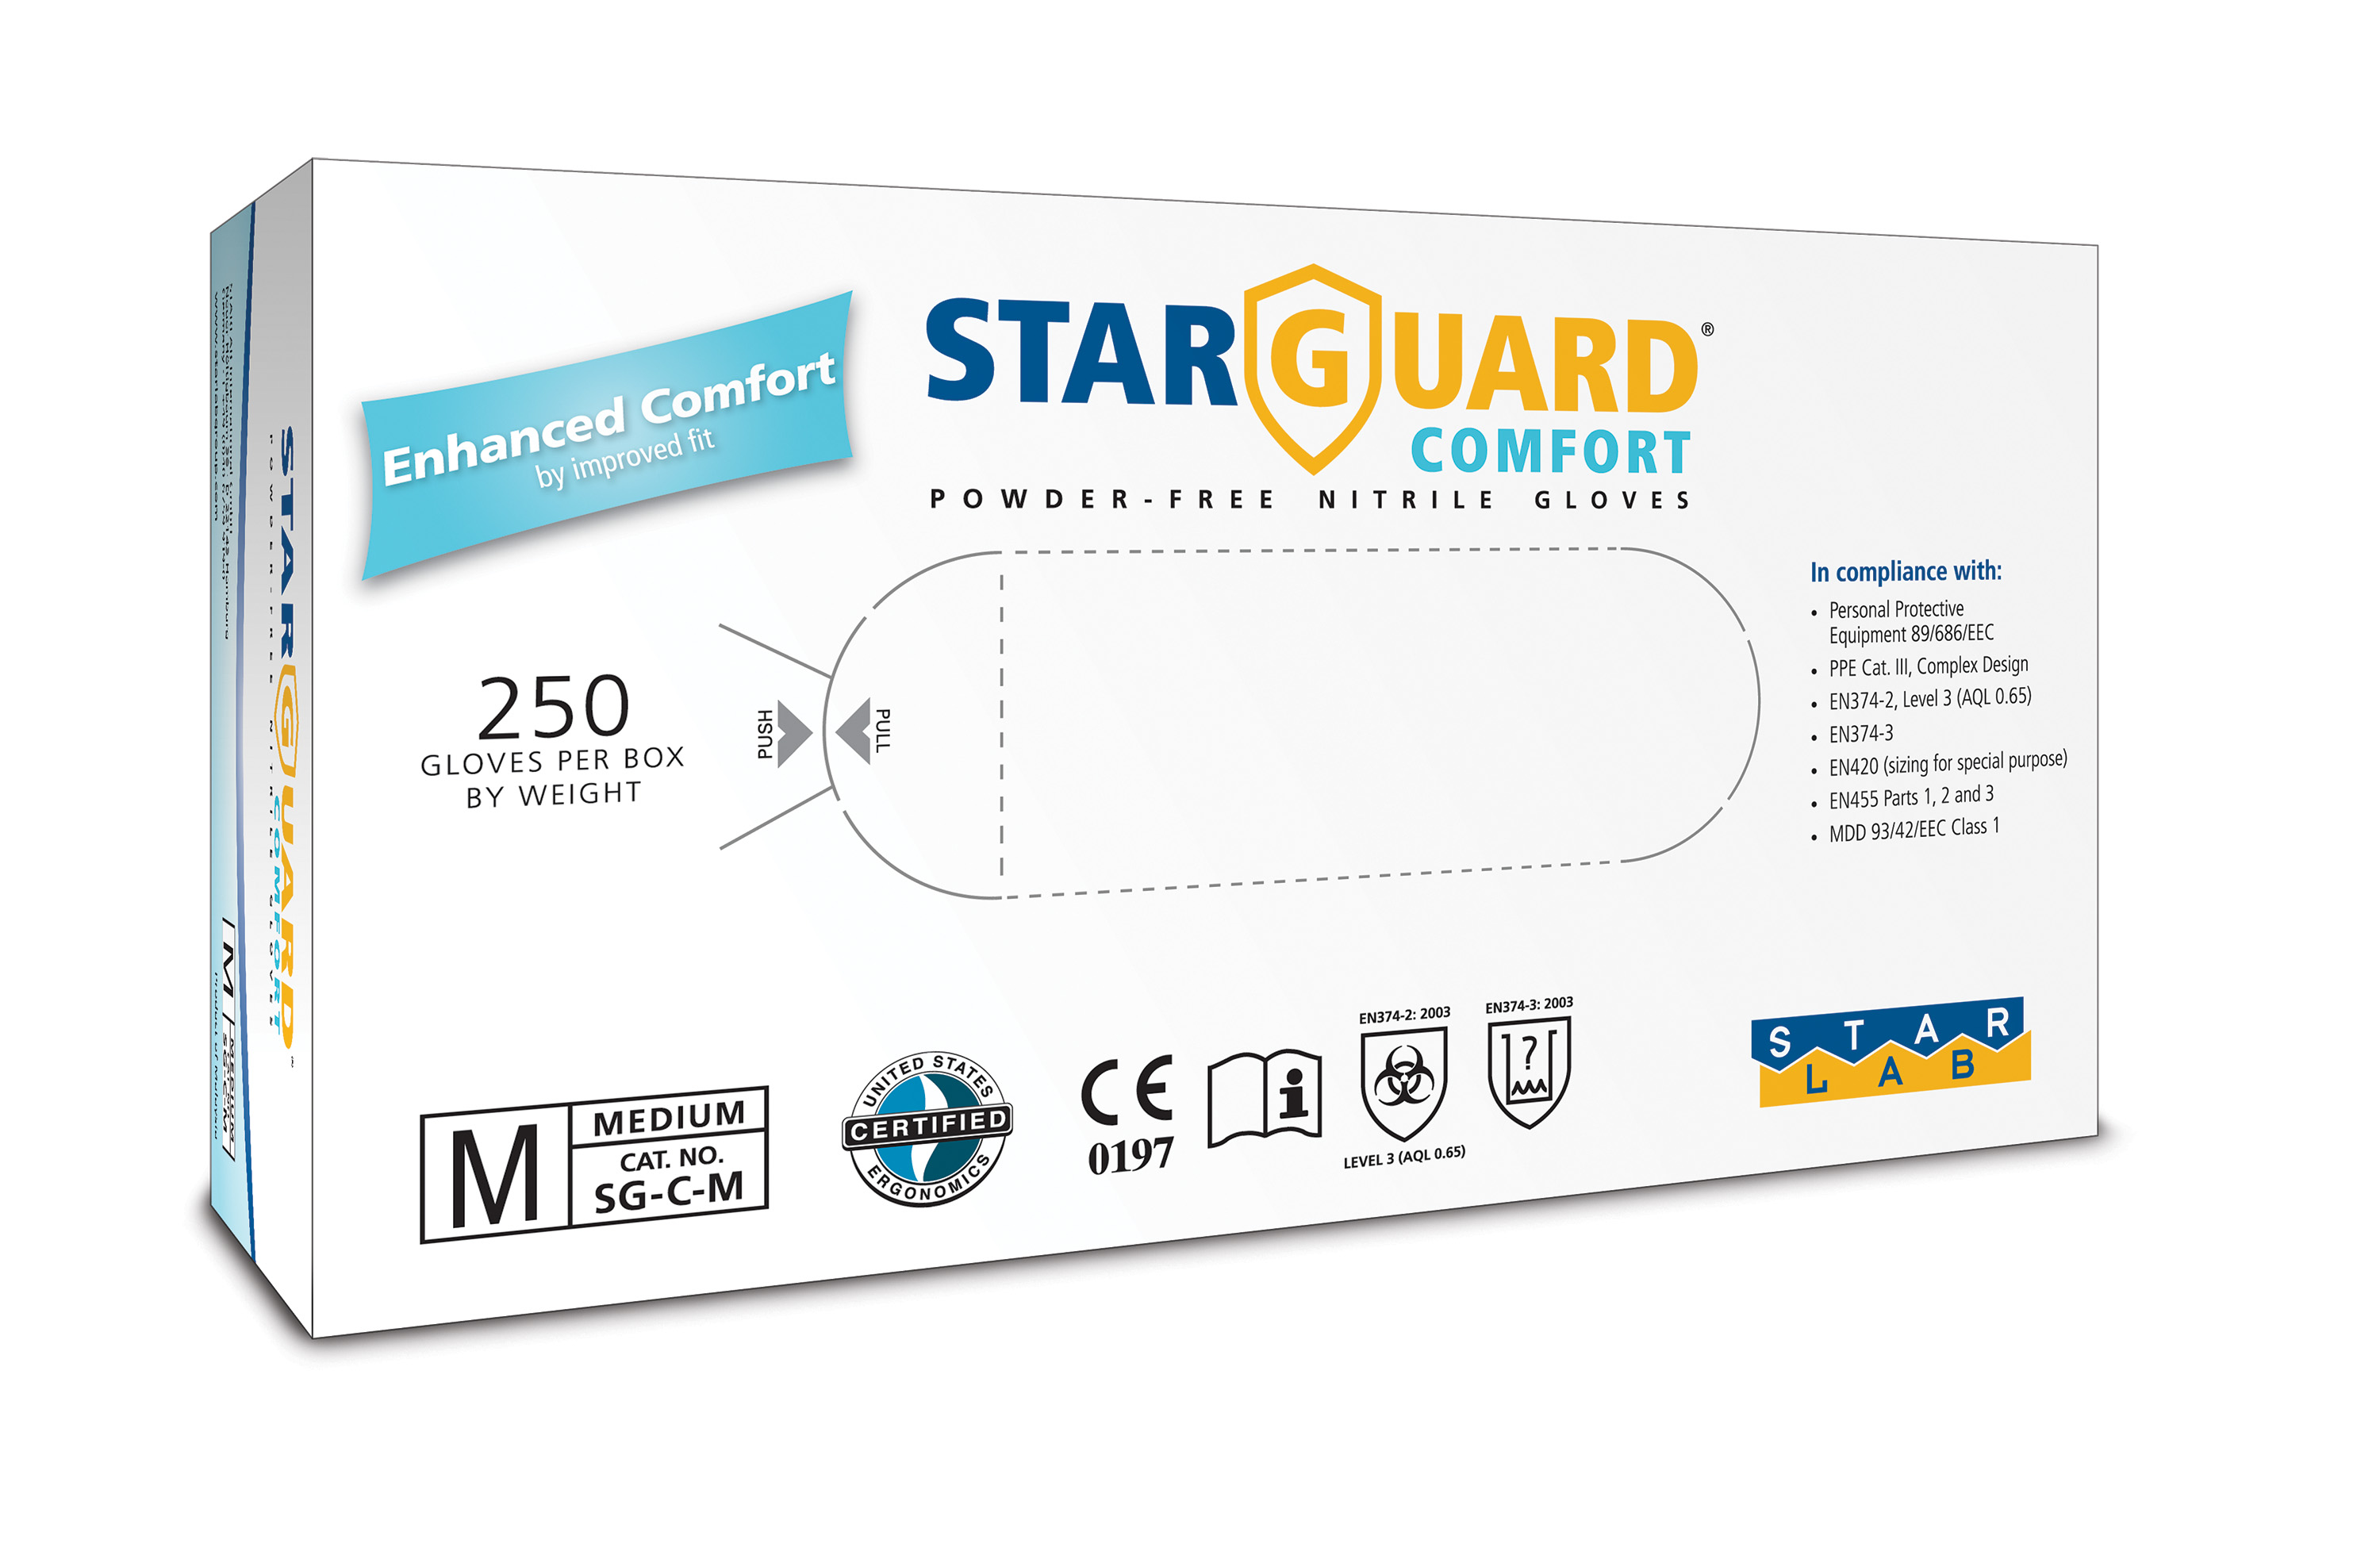 StarGuard COMFORT  (feels like Latex) Nitrile Gloves, Powder Free, Blue, Size M, Pk/ 10 x 250 gloves  - just sFr. 5,25/100 gloves